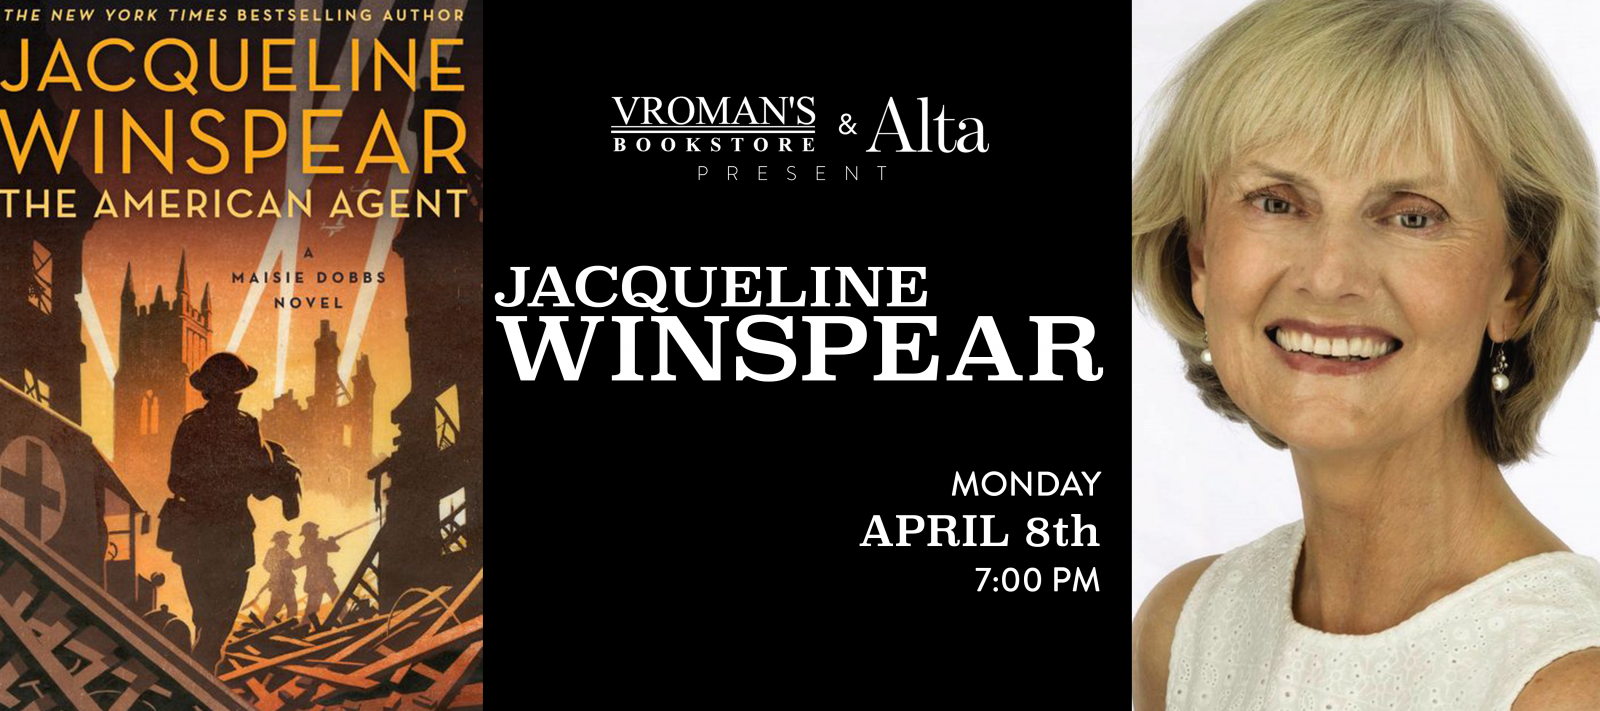 Jacqueline Winspear Book Signing